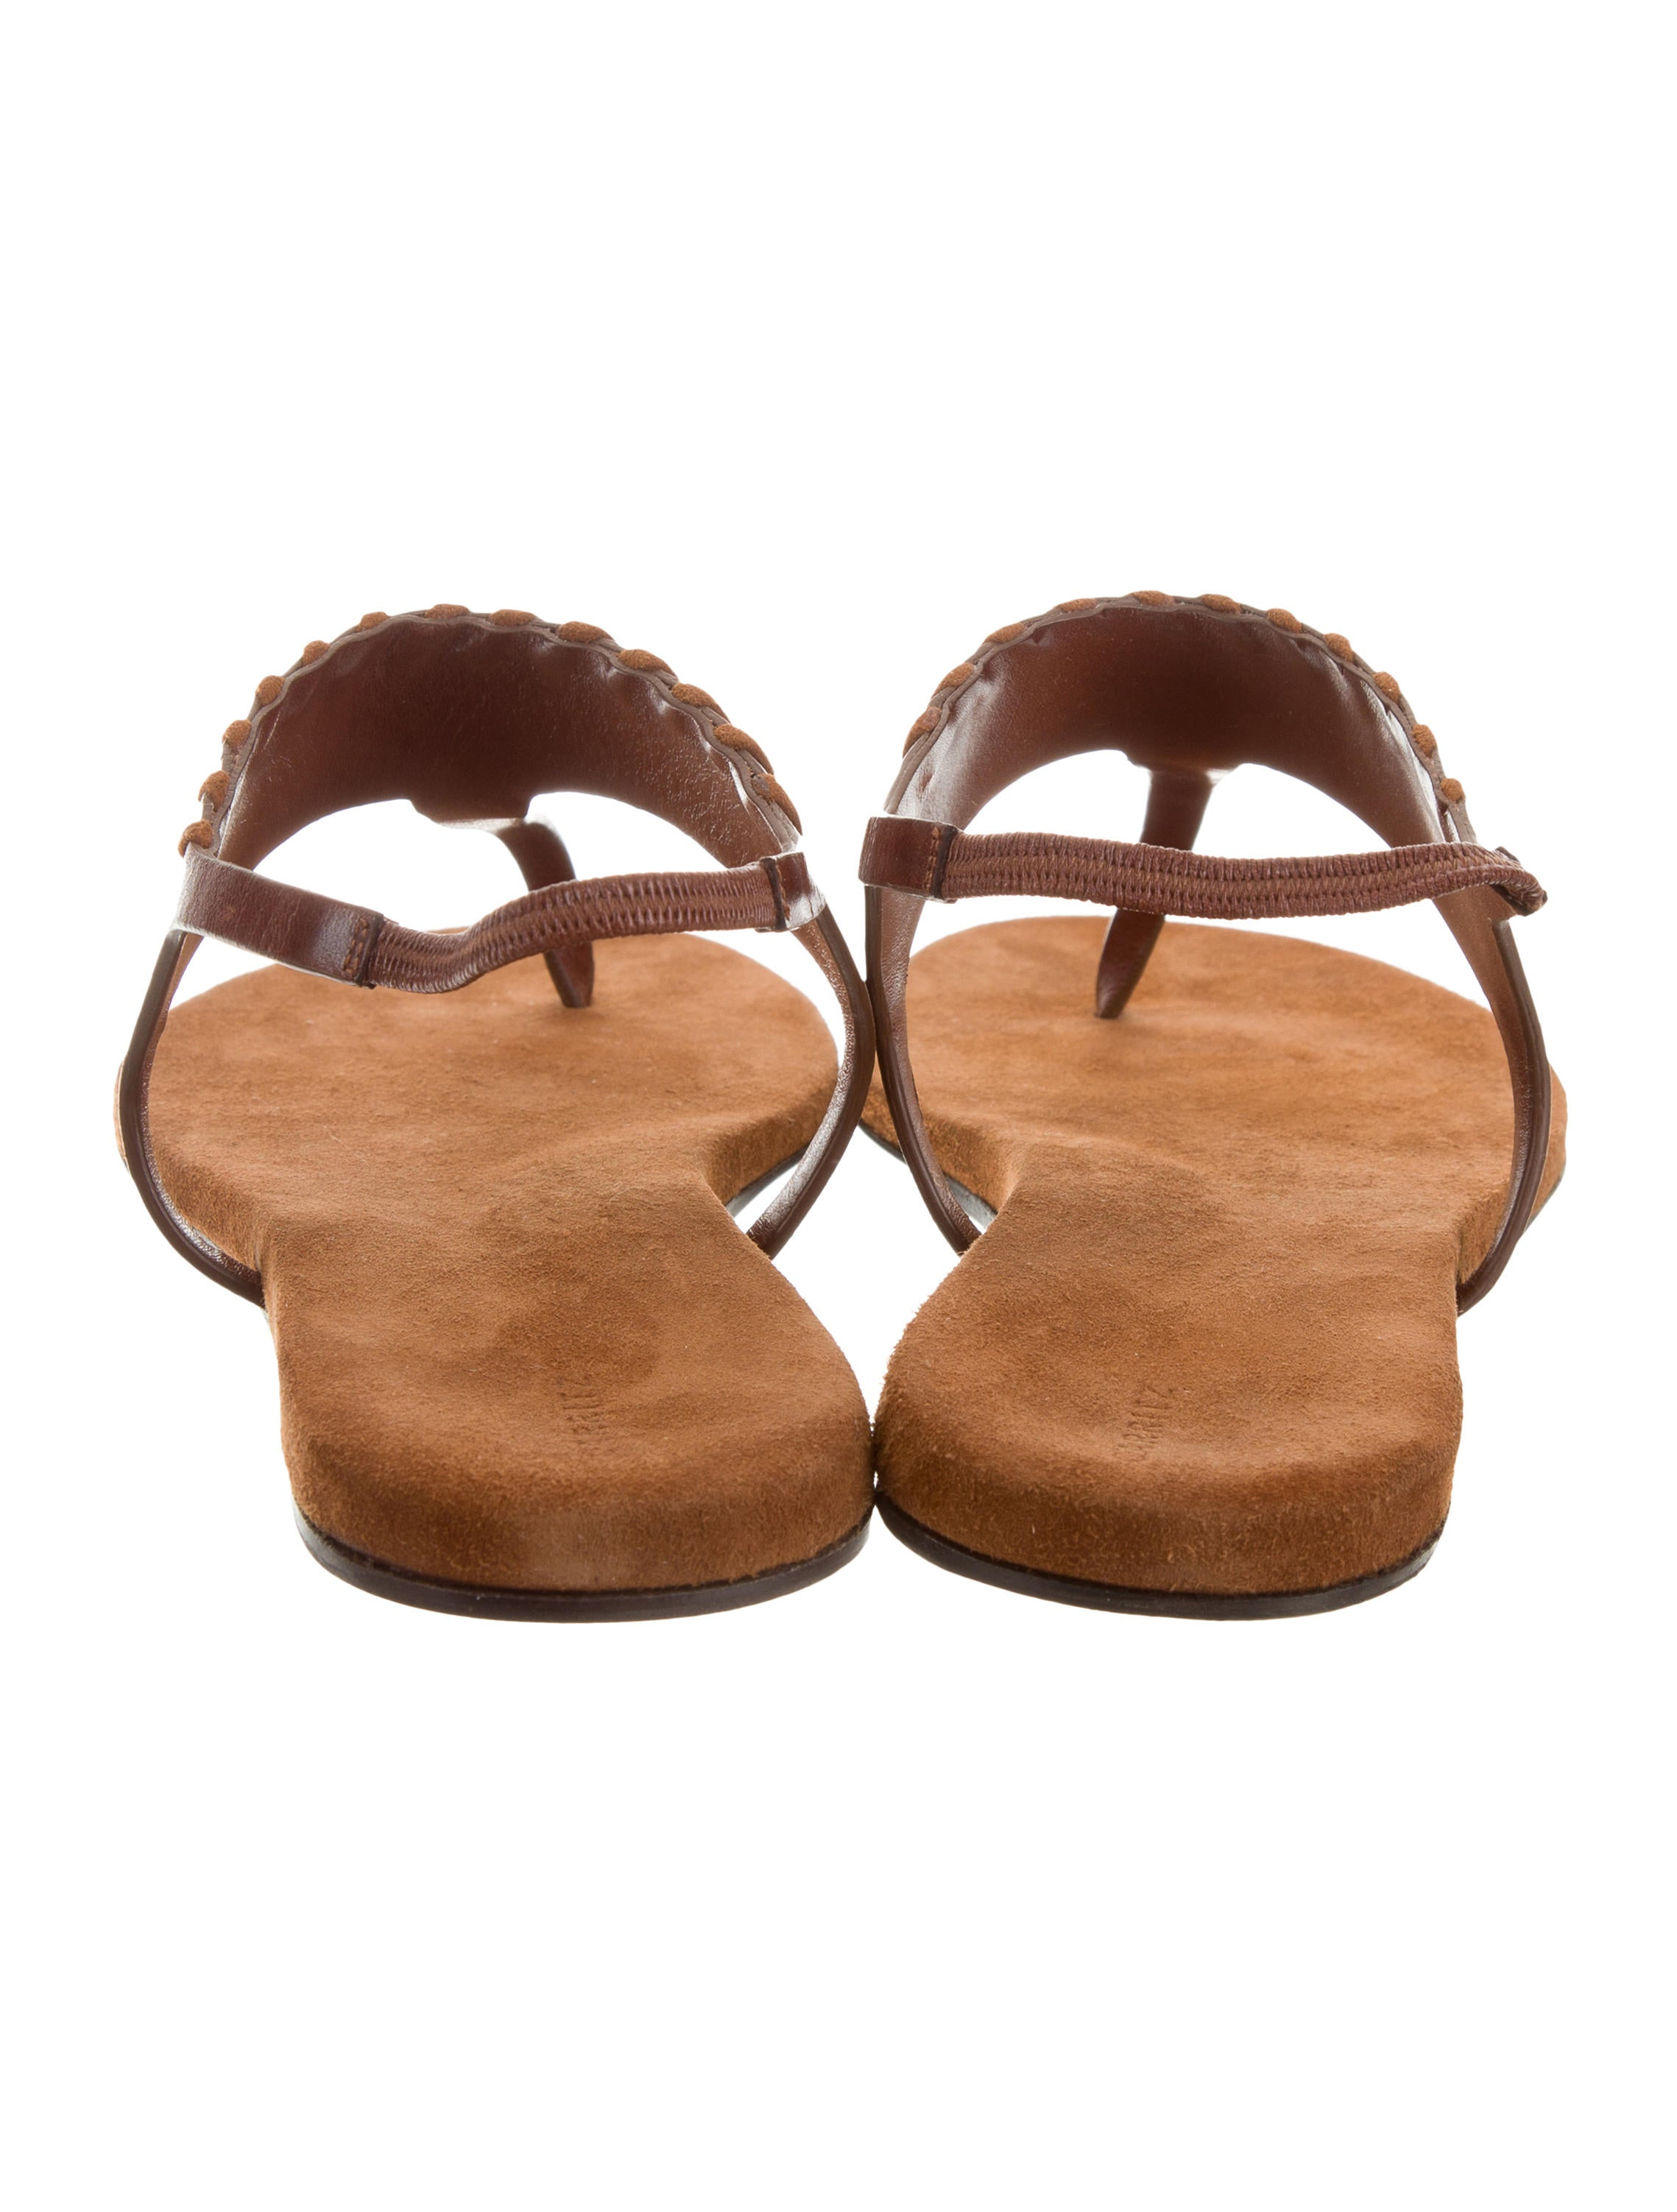 outlet brand new unisex Carritz Salome Suede Sandals w/ Tags clearance official site EieBpa0Hb